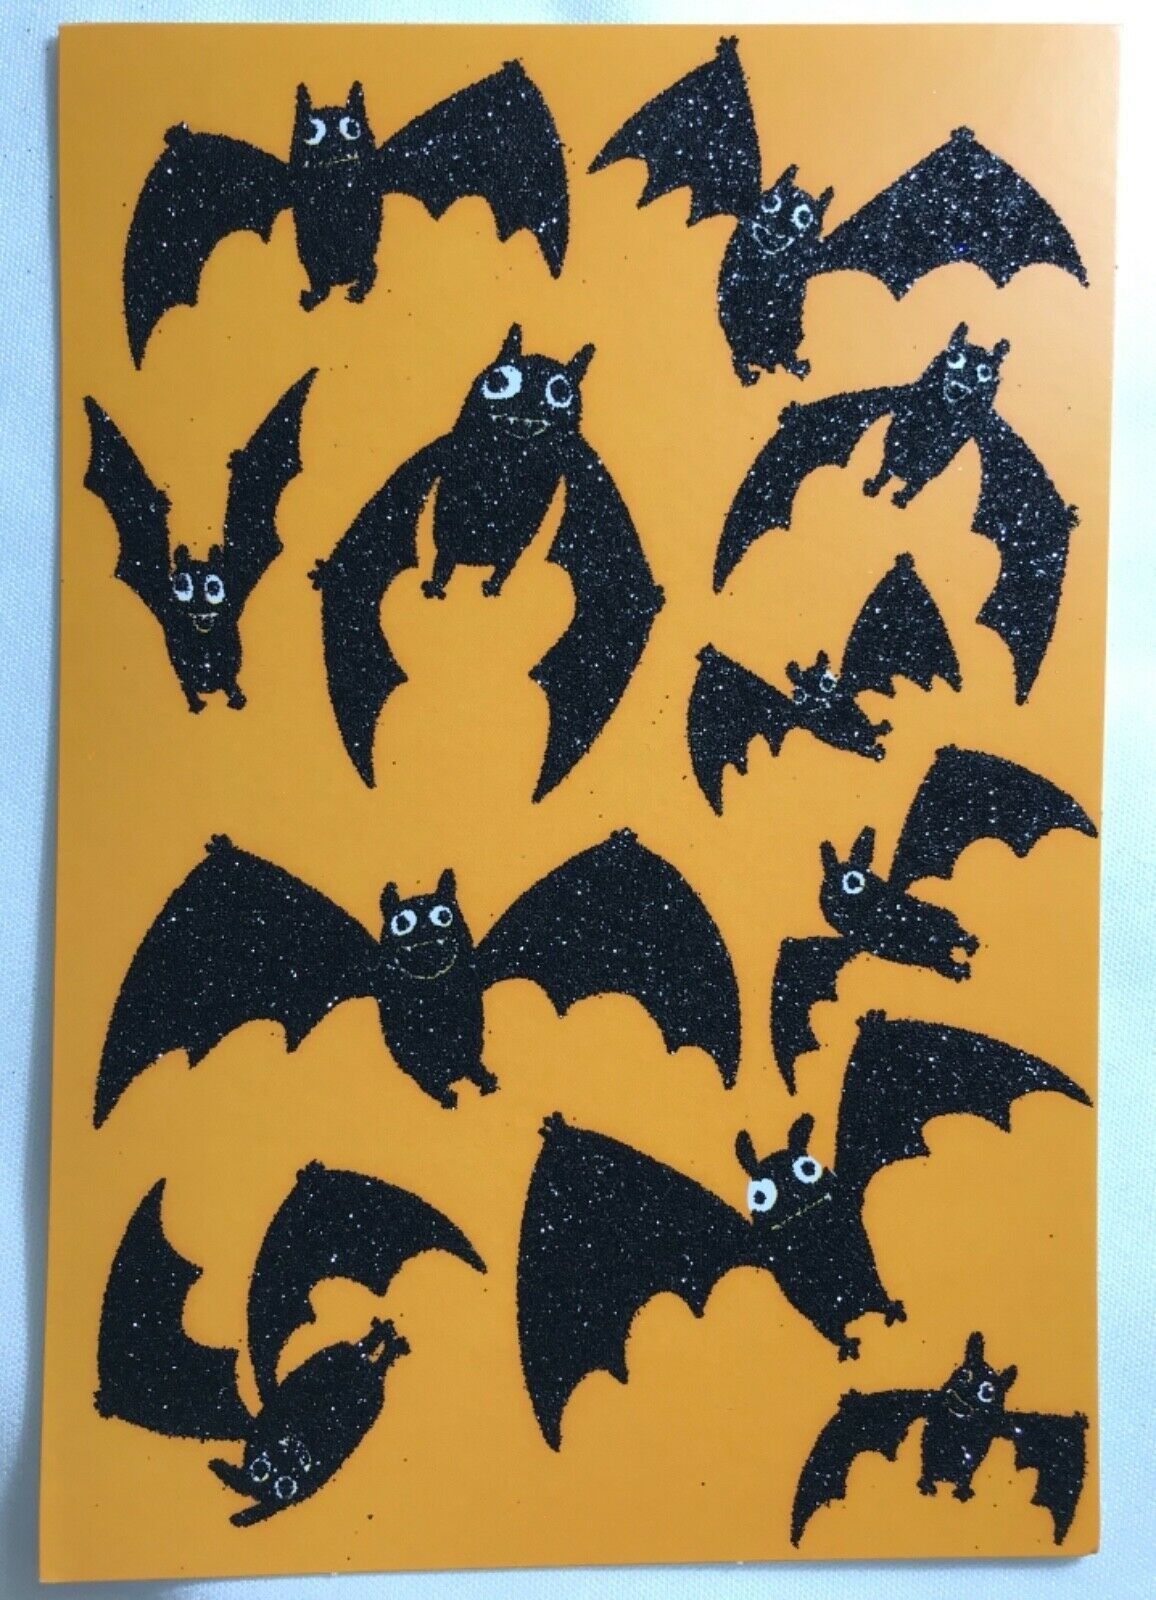 Primary image for Halloween Card 2019 with Black Glitter Bats